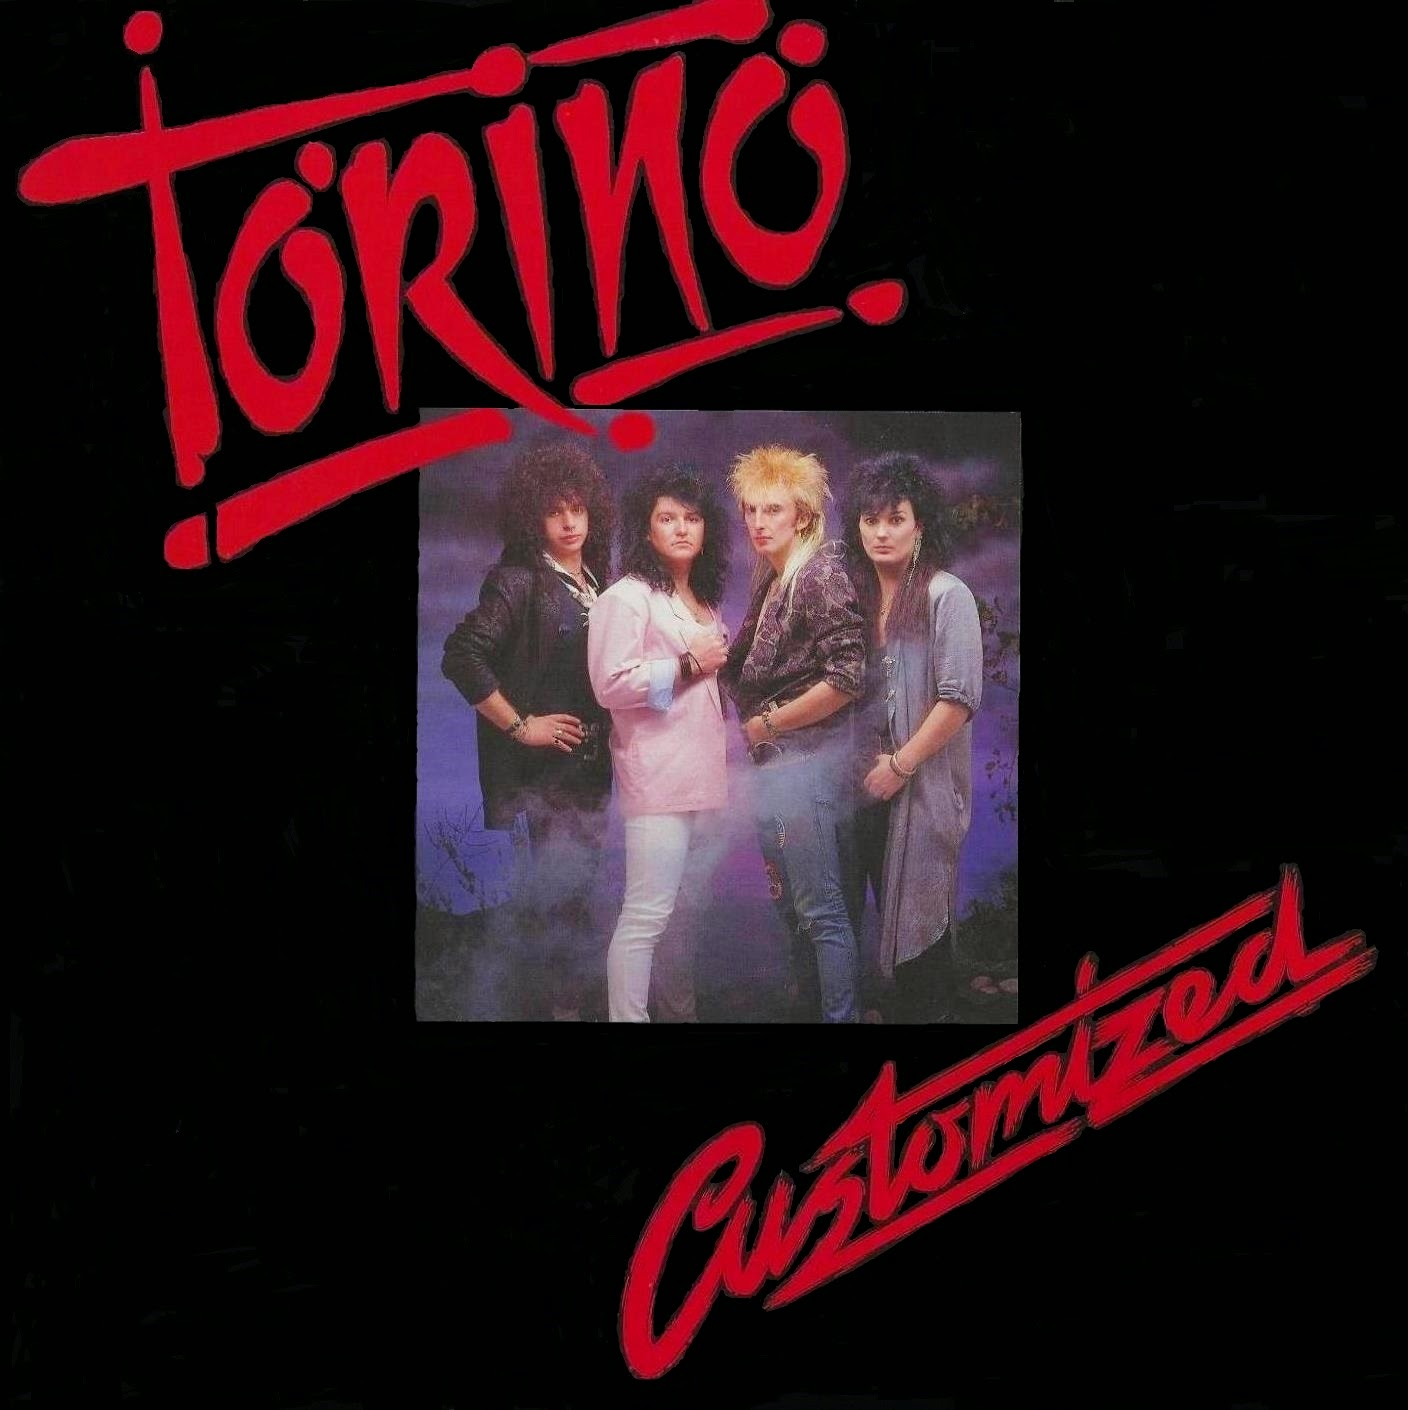 Torino Customized 1988 aor melodic rock